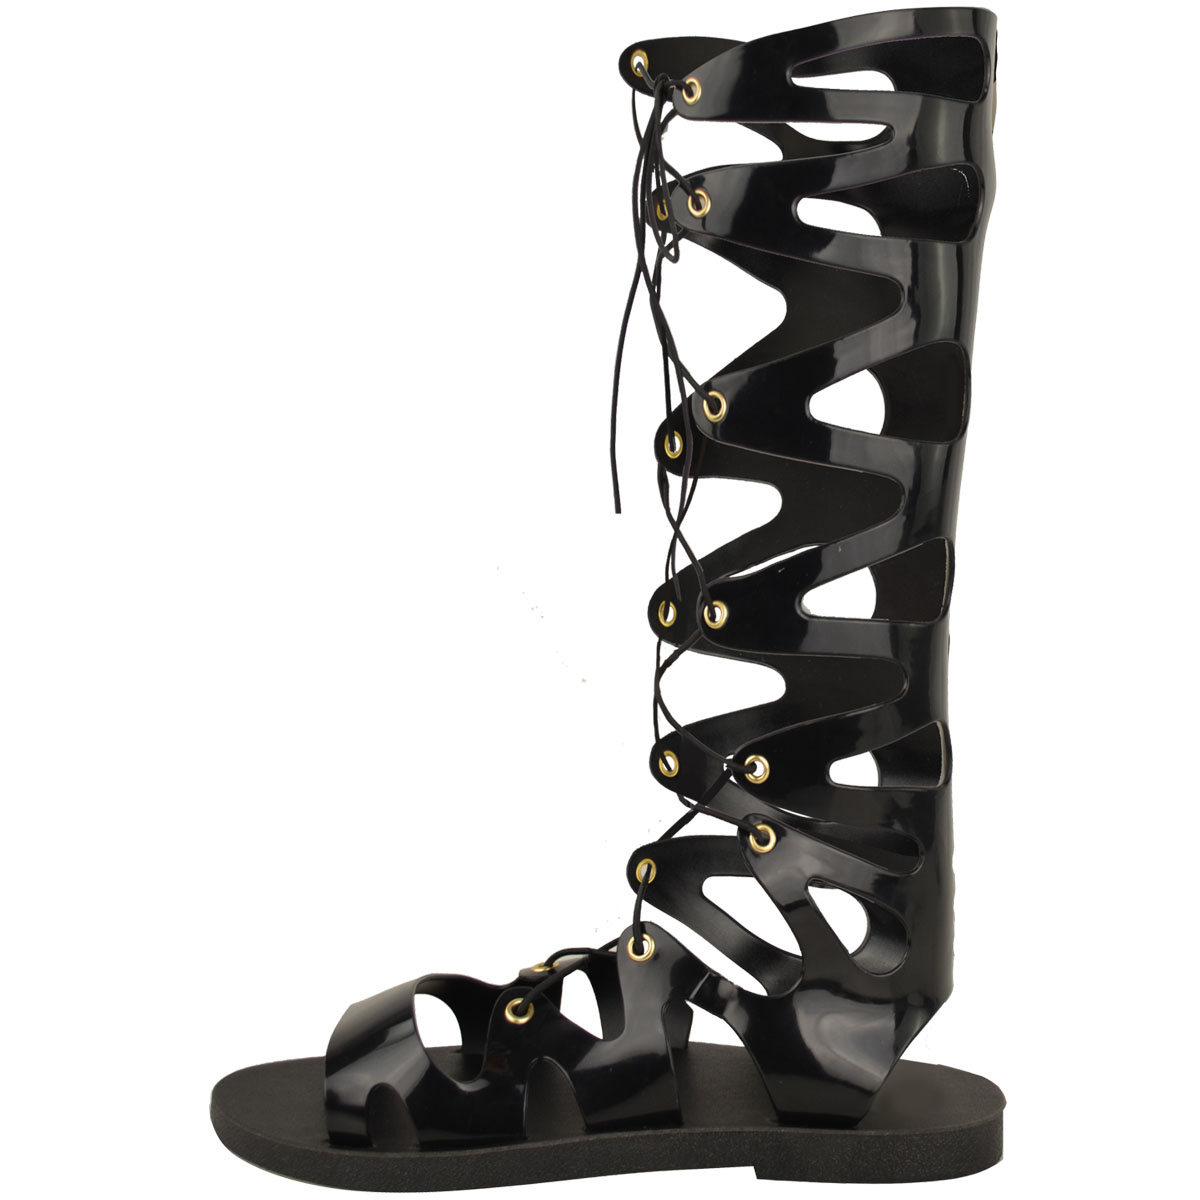 Womens-Ladies-Flat-Knee-High-Gladiator-Sandals-Strappy-Beach-Cut-Out-Boots-Size thumbnail 4